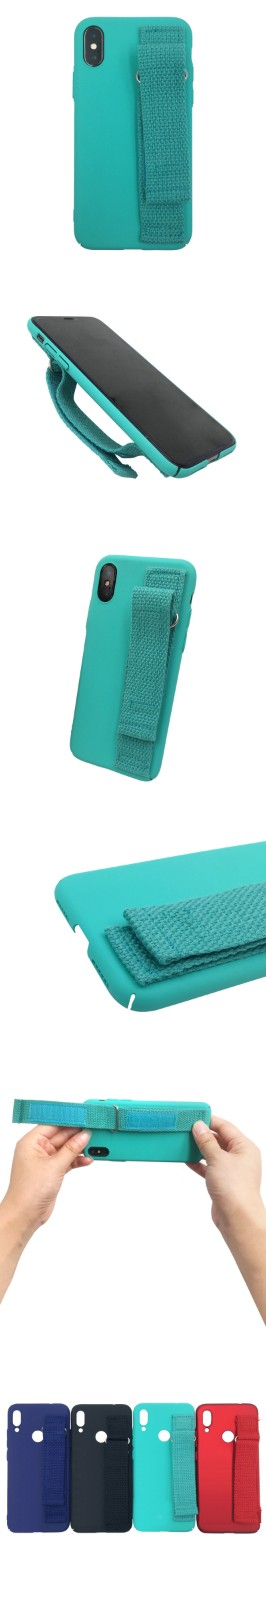 TenChen Tech-Casing Phone Manufacturer, Mobile Phone Cases Wholesale | Tenchen Tech